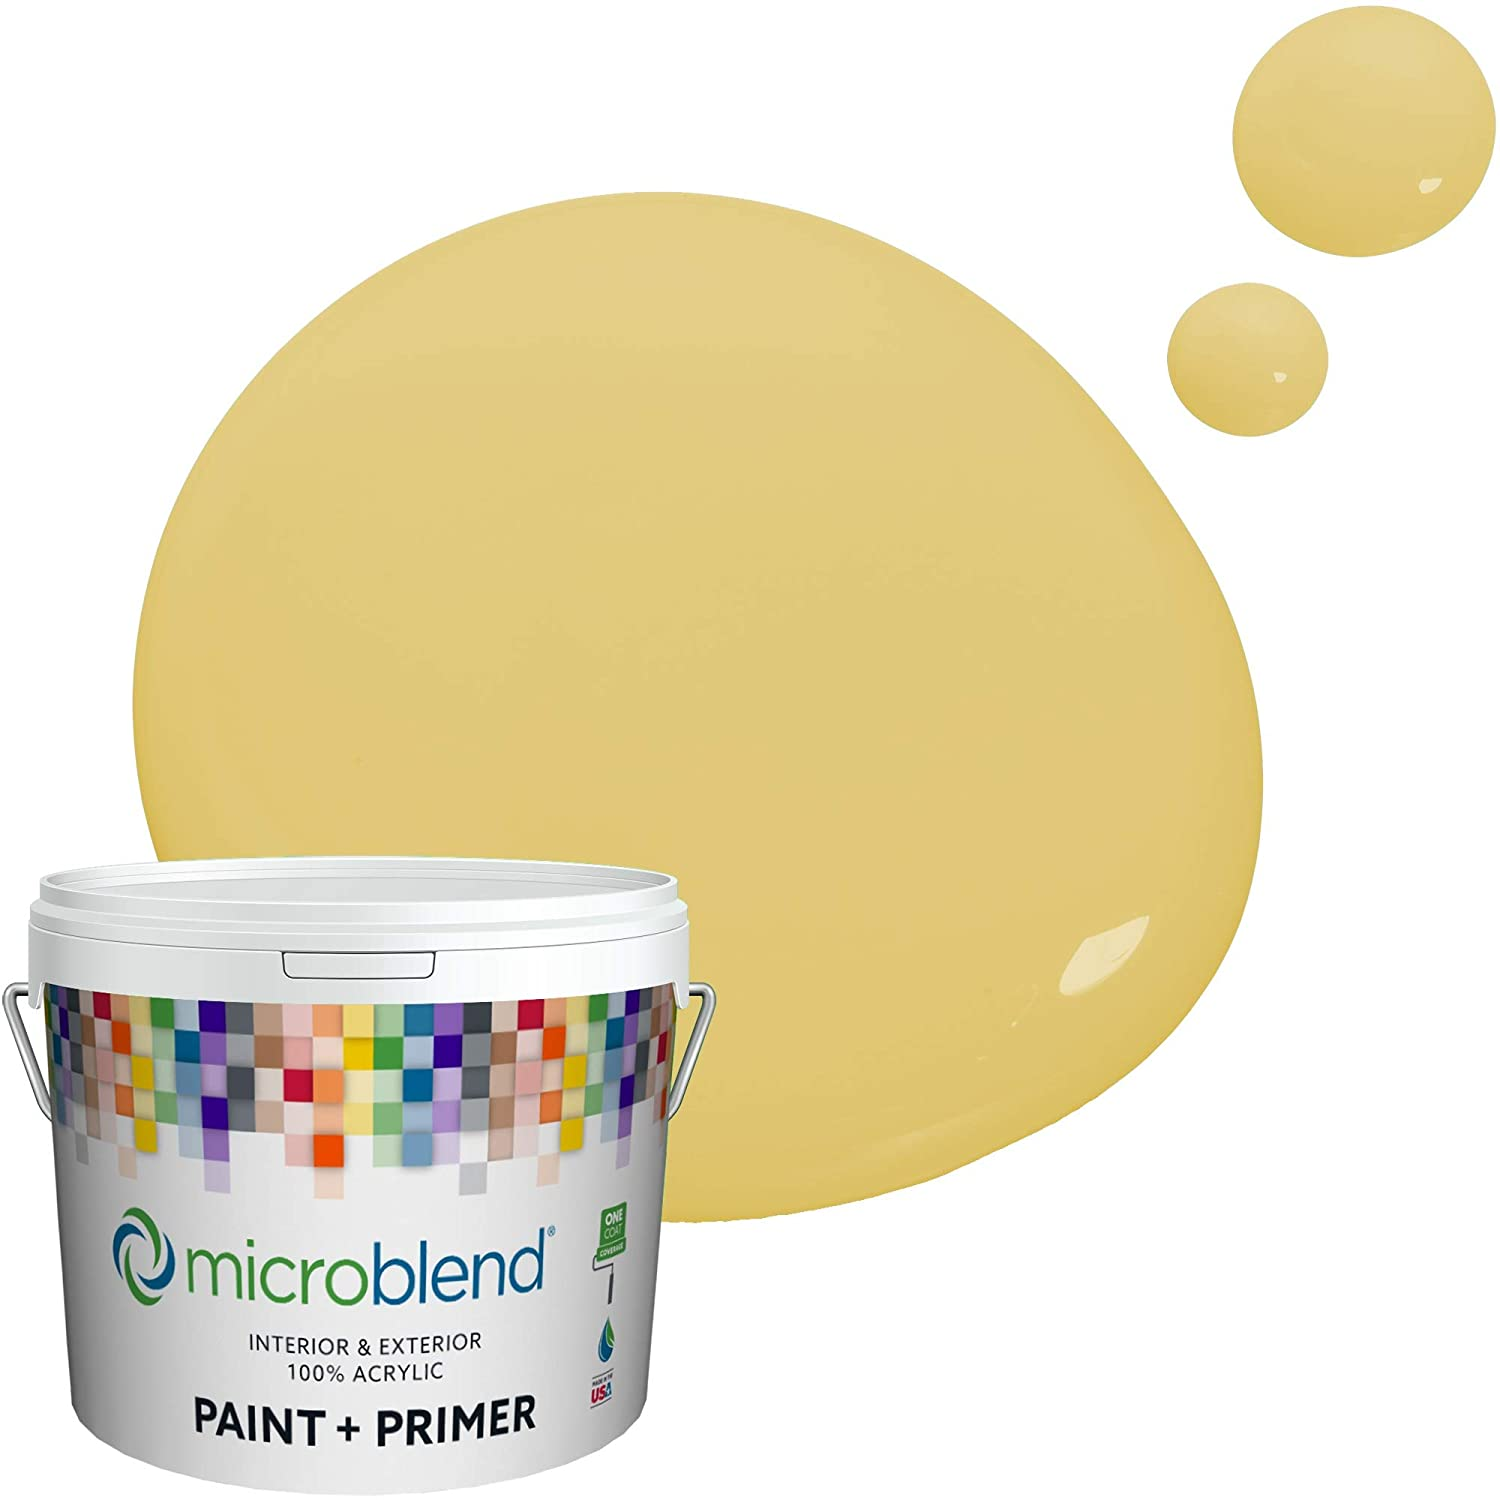 Microblend Interior Paint and Primer - Yellow/Gold Beach, Flat Sheen, 2-Gallon, Premium Quality, One Coat Hide, Low VOC, Washable, Microblend Yellows Family